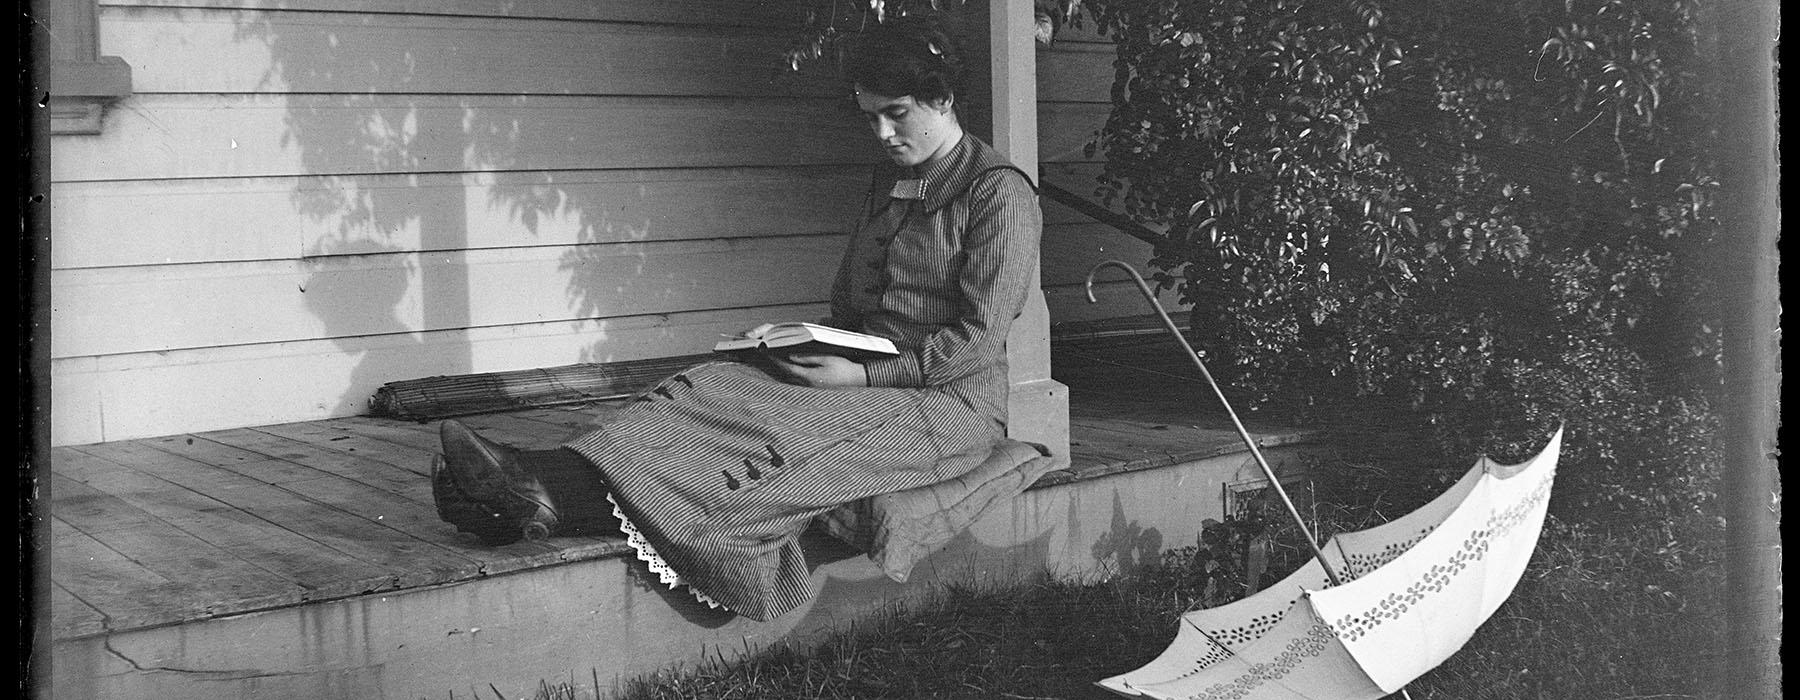 Photo of a woman sitting on her porch reading a book. Beside her an open umbrella sits on the ground.